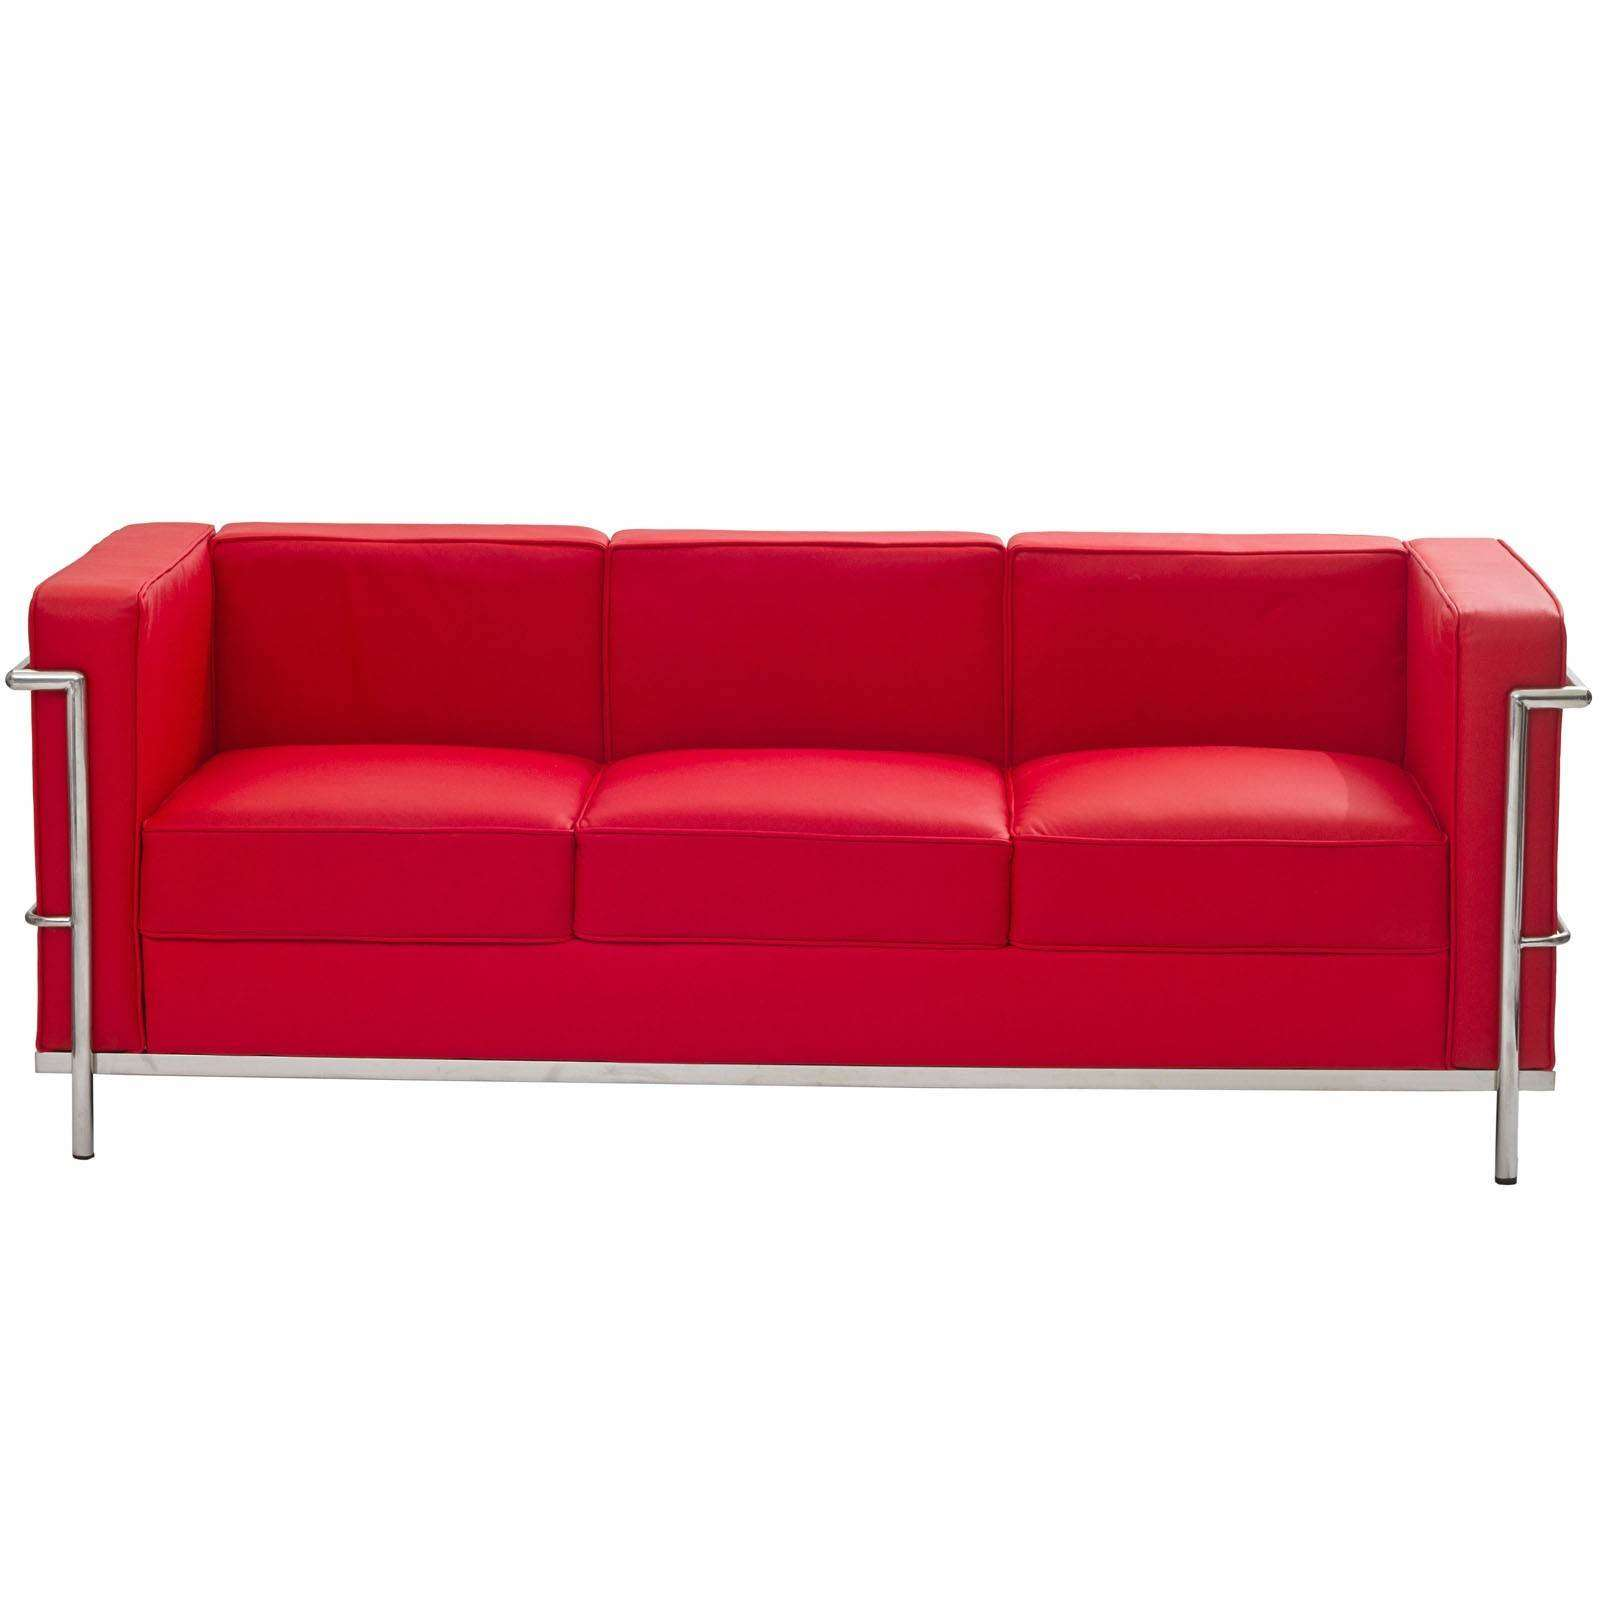 Le corbusier style lc2 sofa leather for Le corbusier sofa